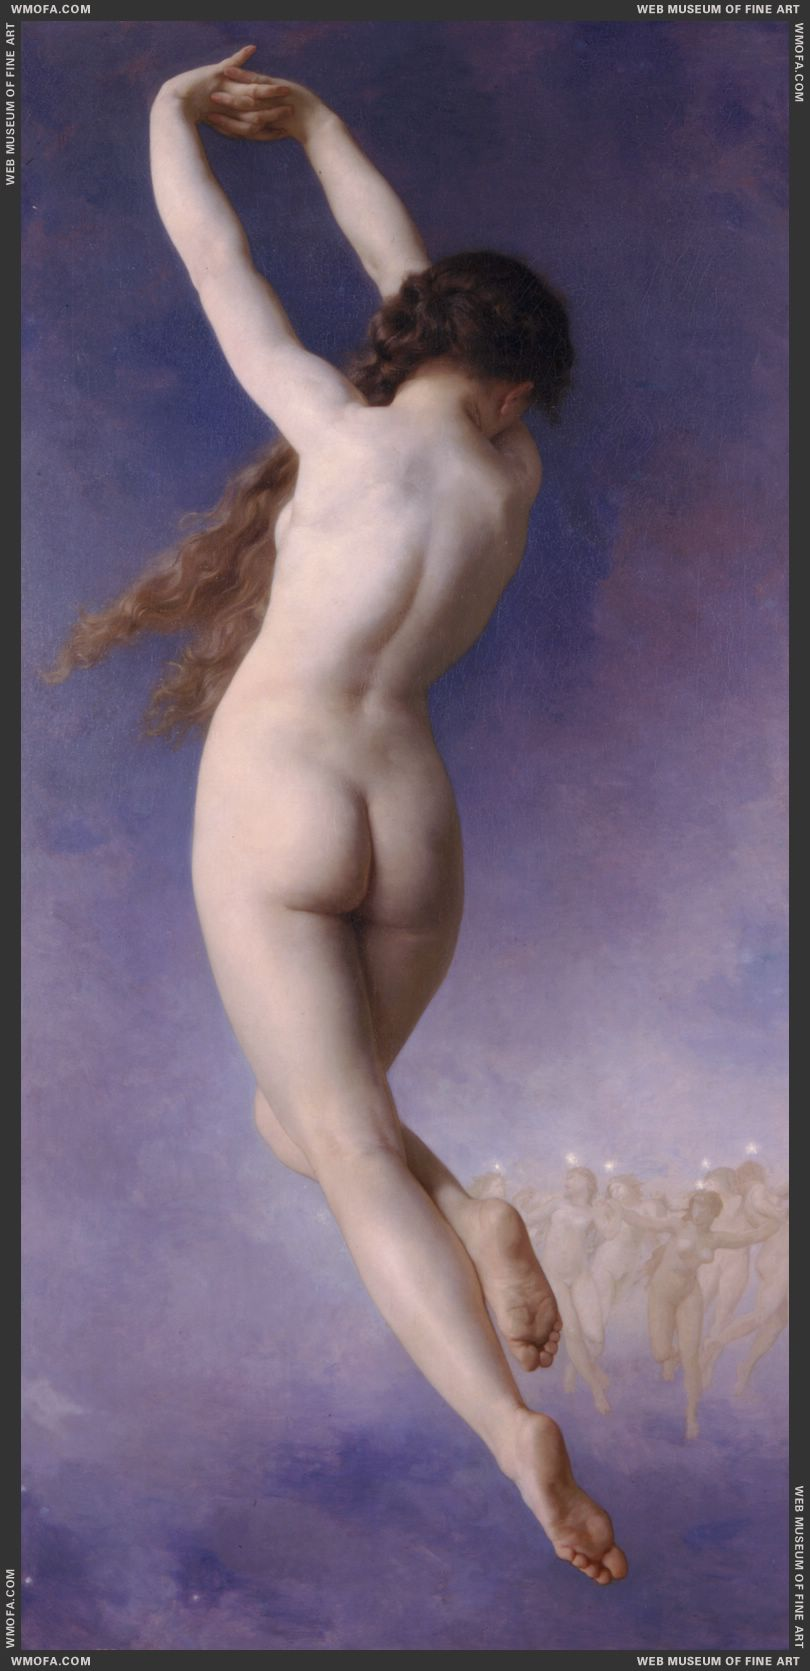 Le Etoile Perdue - The Lost Pleiad 1884 by Bouguereau, William